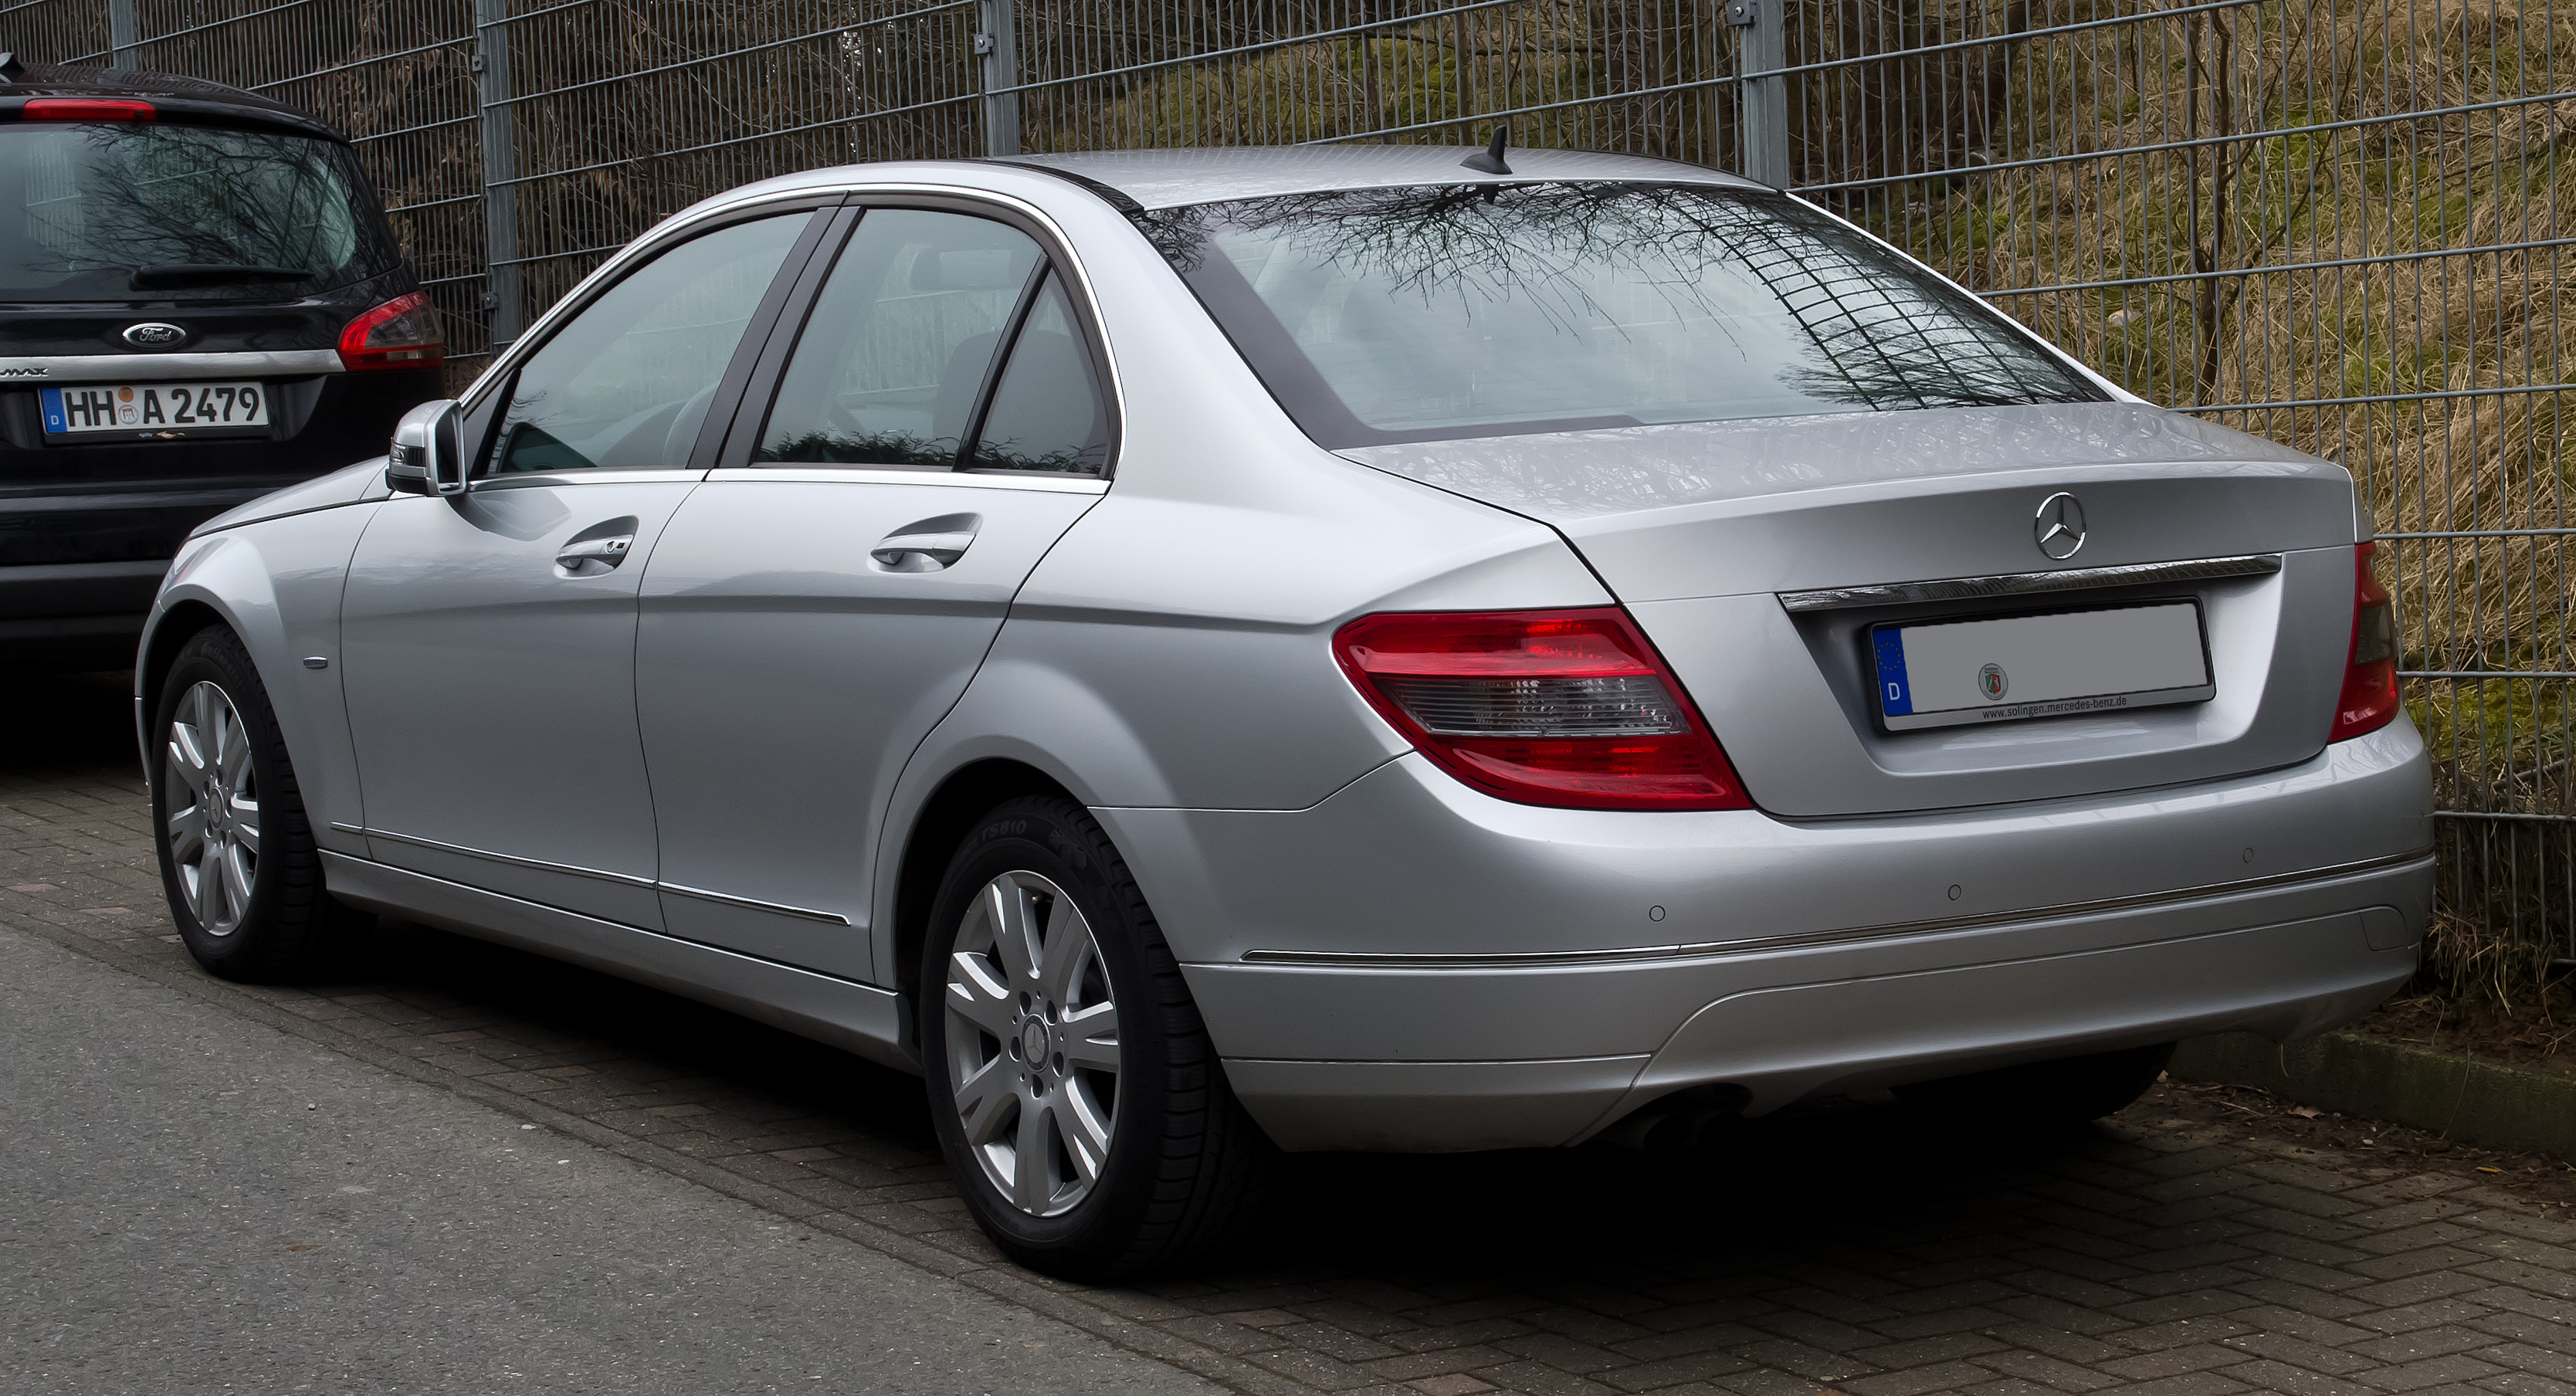 Mercedes benz c 180 kompressor technical details history for Www mercedes benz parts